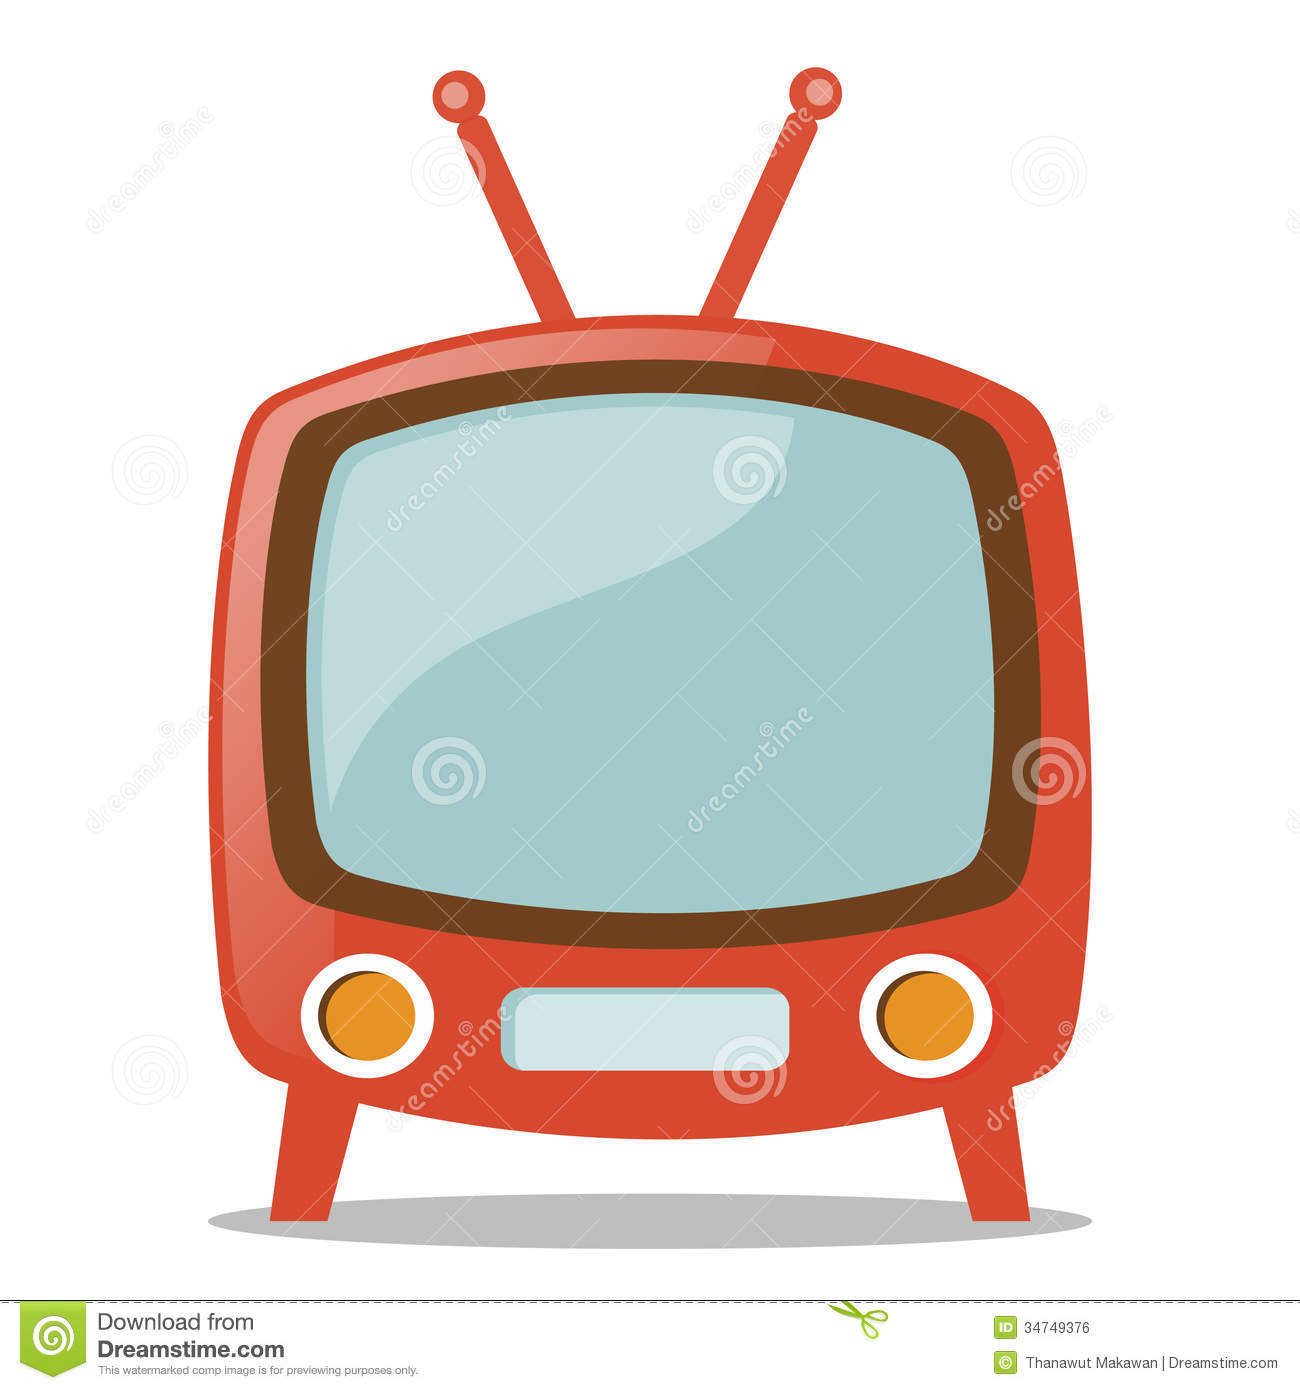 How To Draw An Old Fashioned Tv